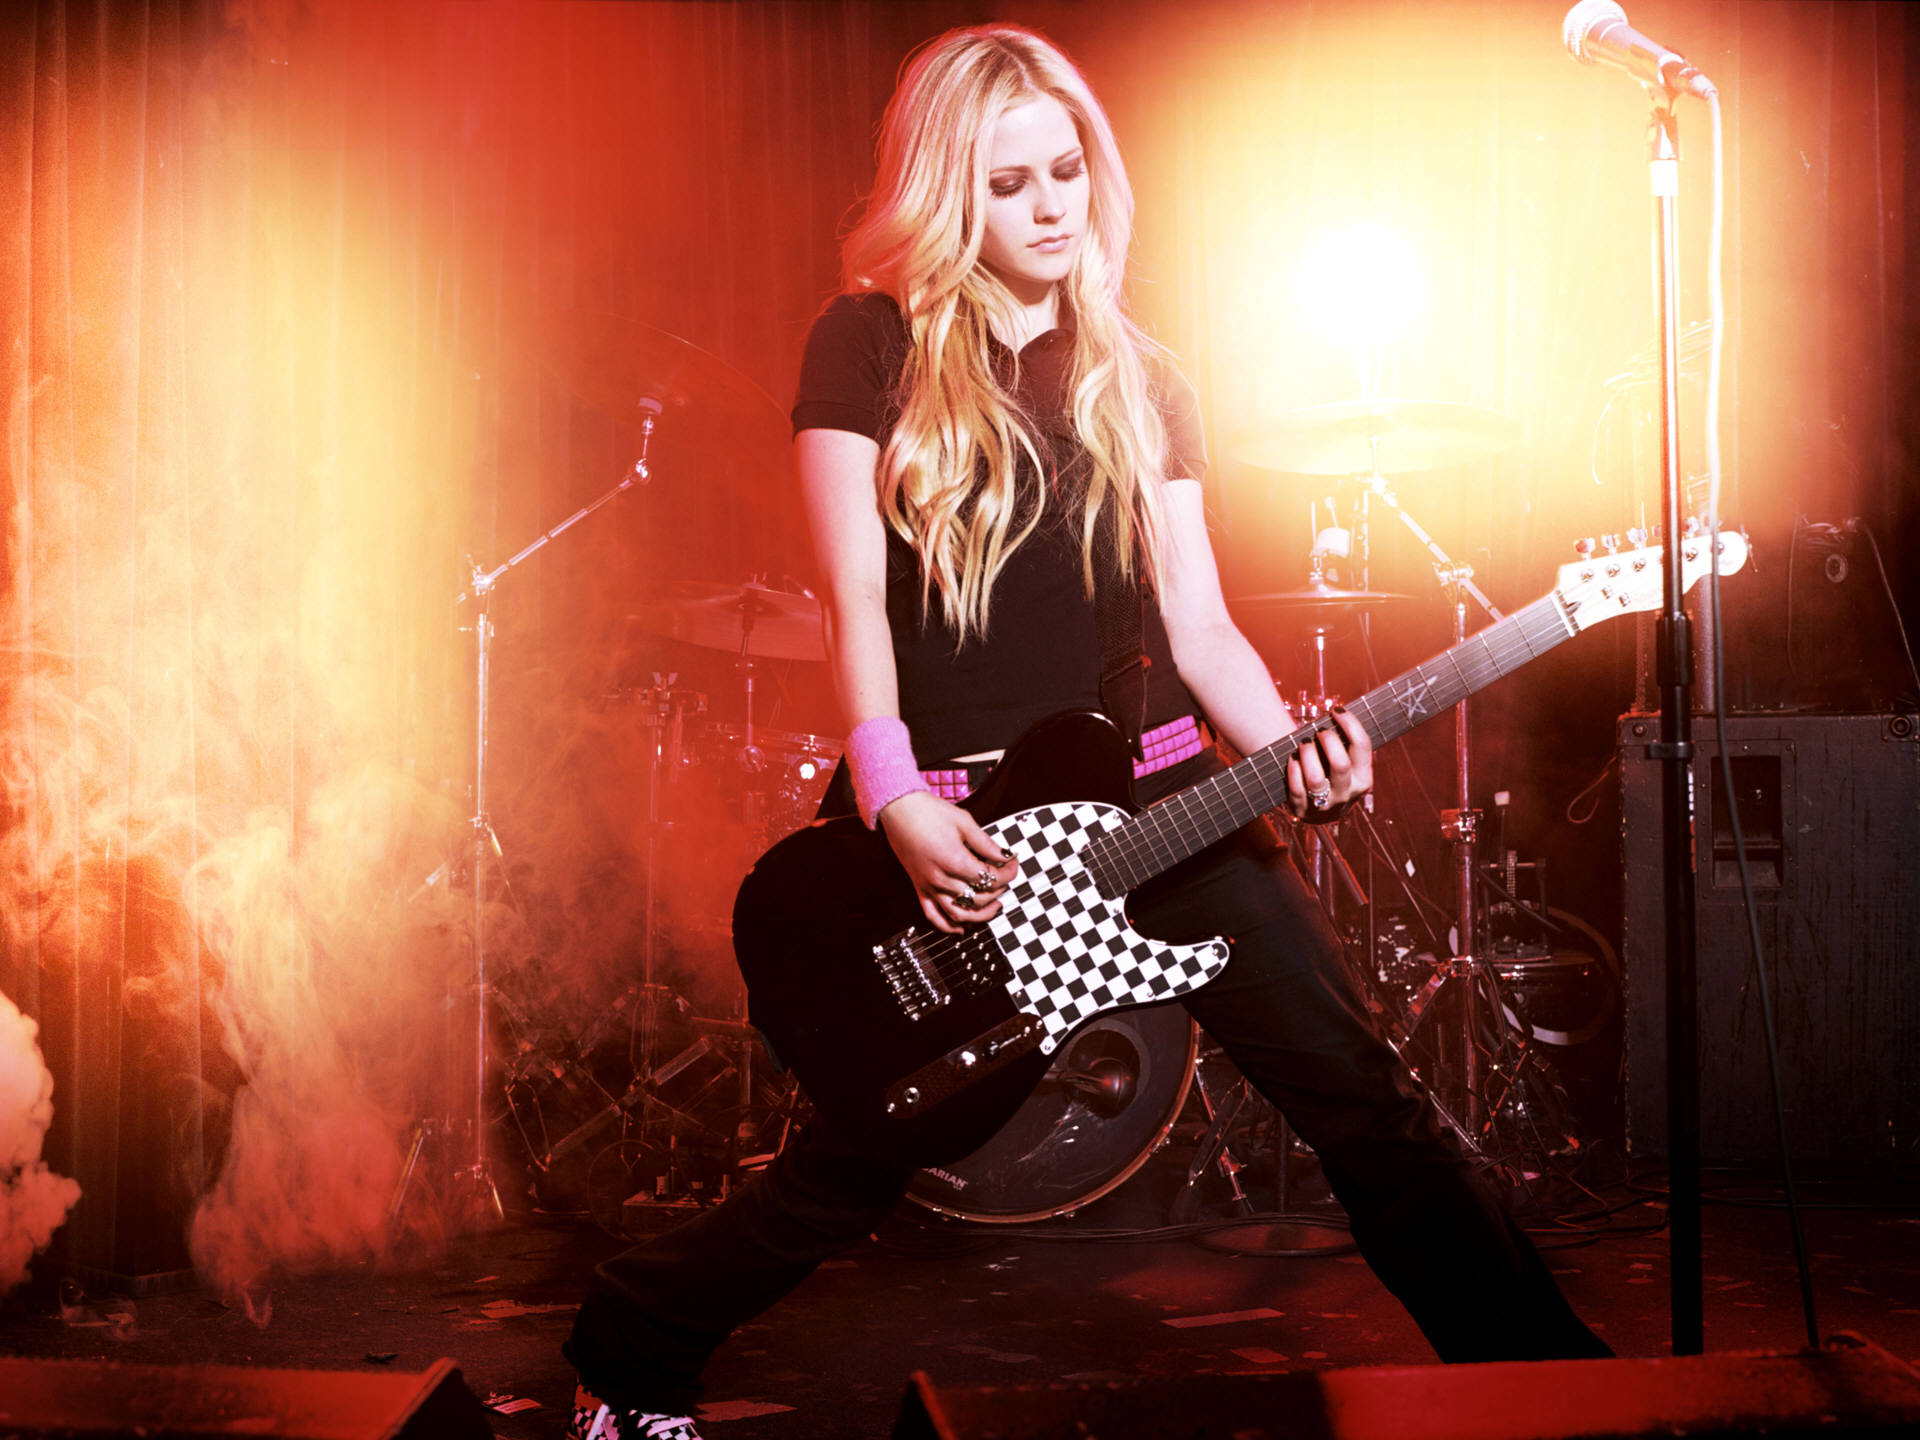 Avril Lavigne Wallpapers guitar stylish